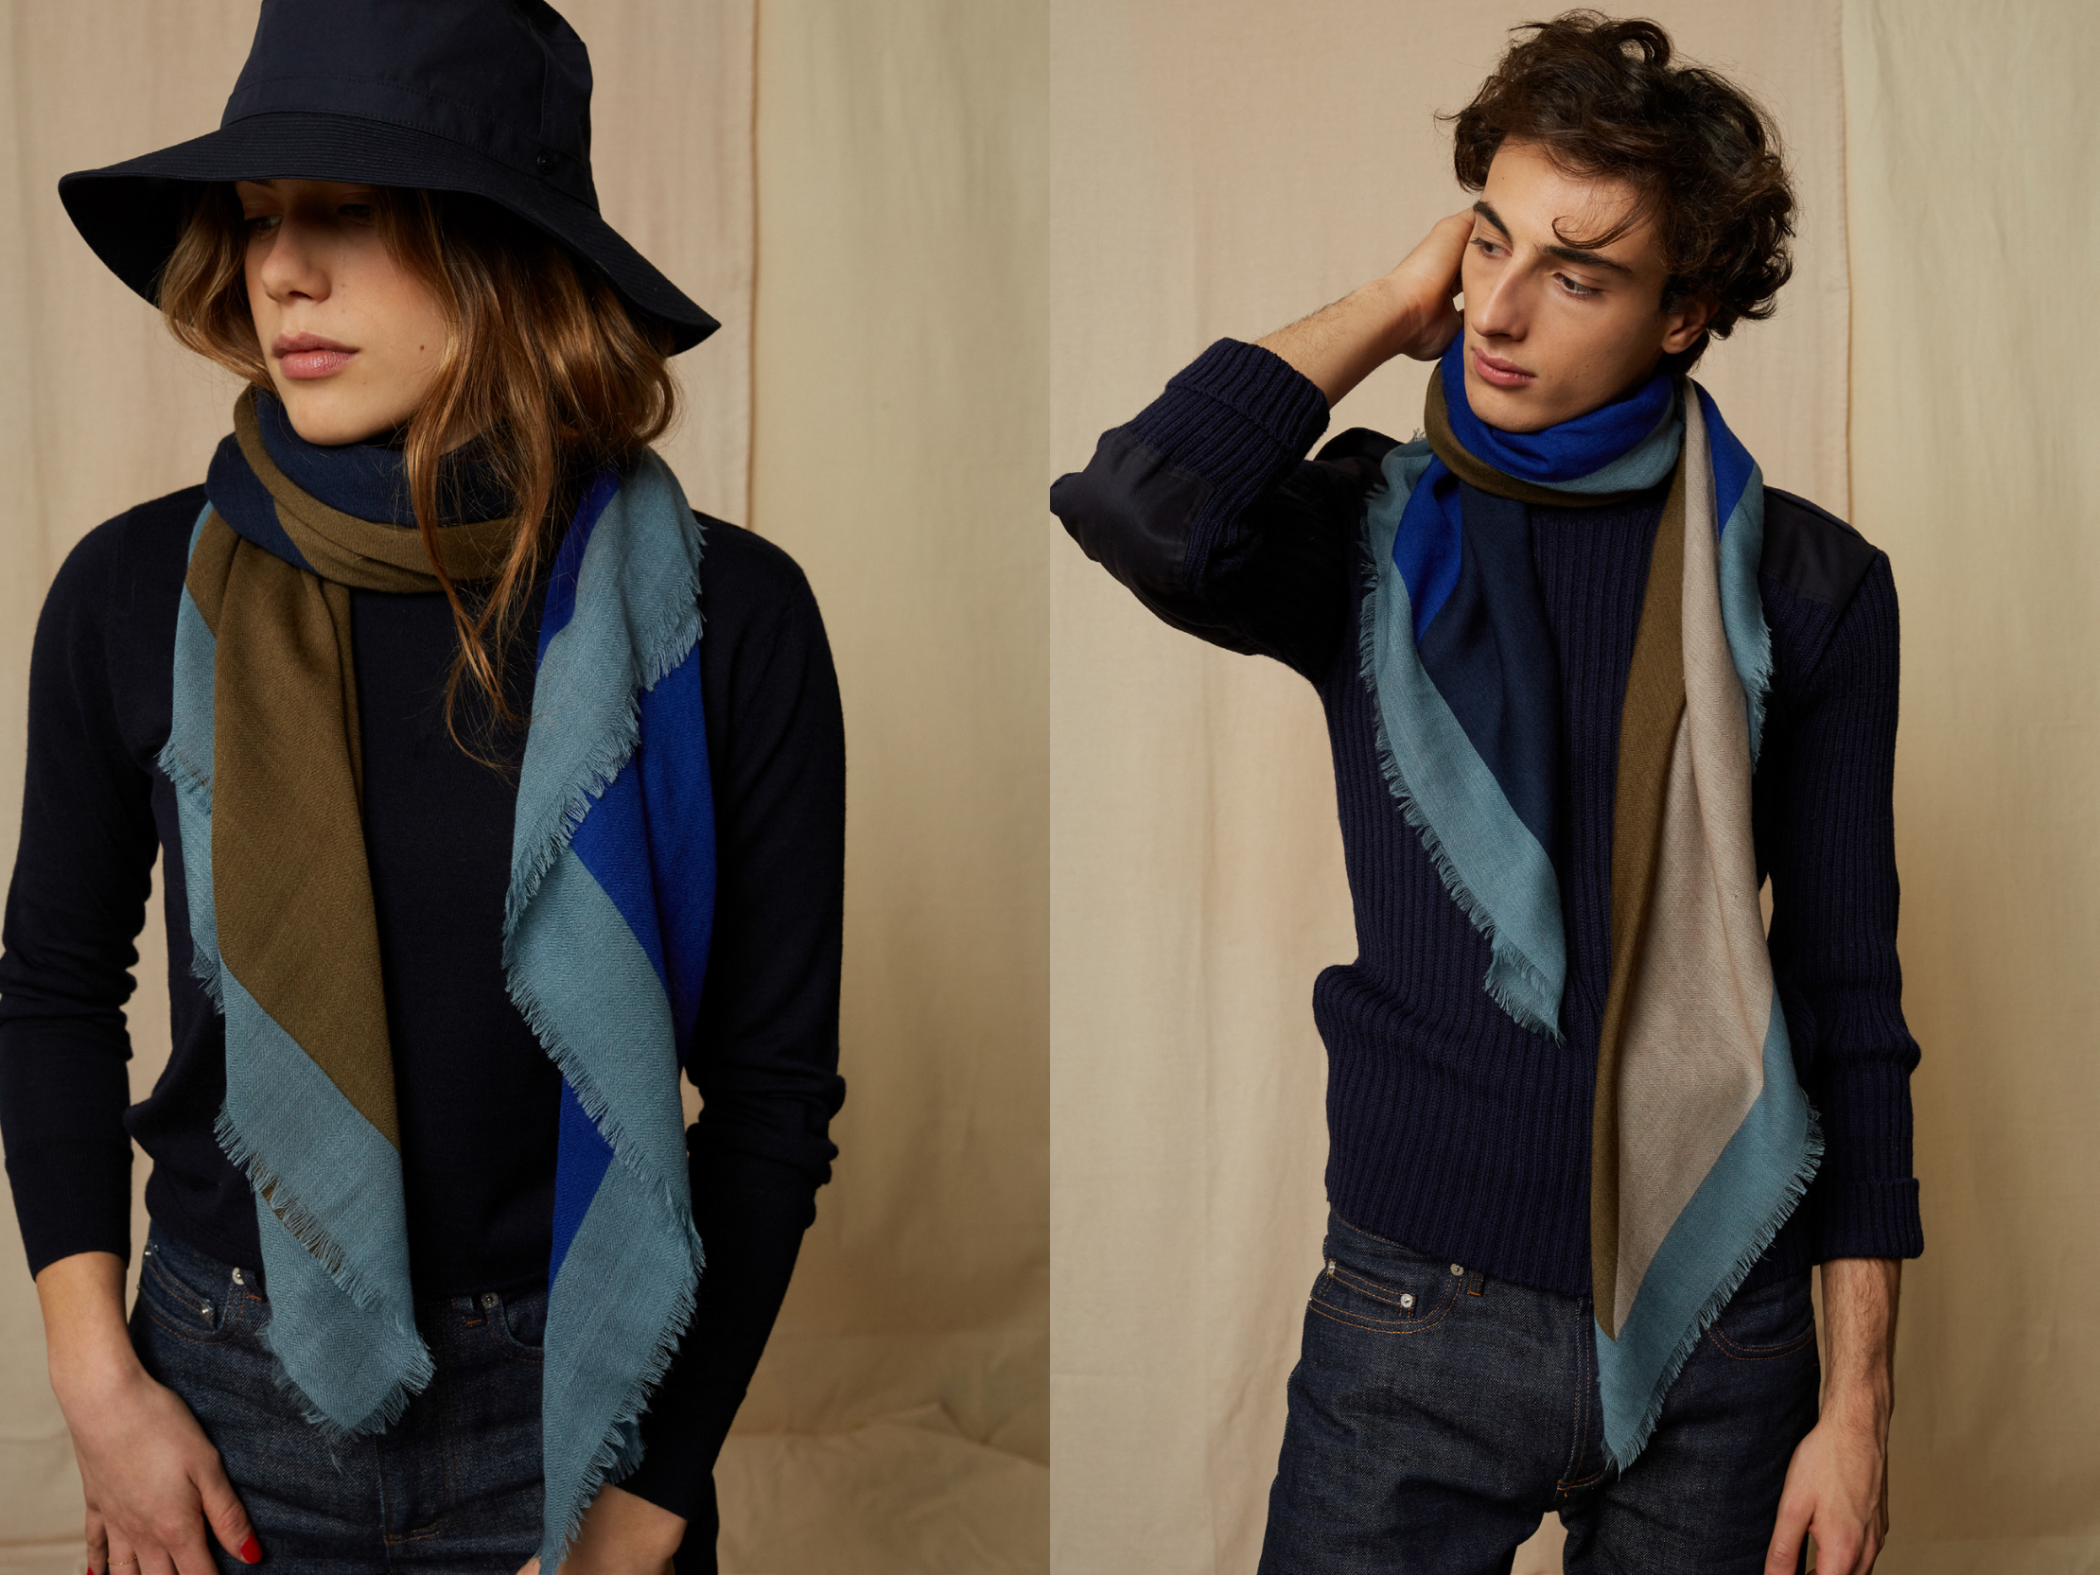 [BrandConnection] Have you got your 'Moismont' in this cold weather?